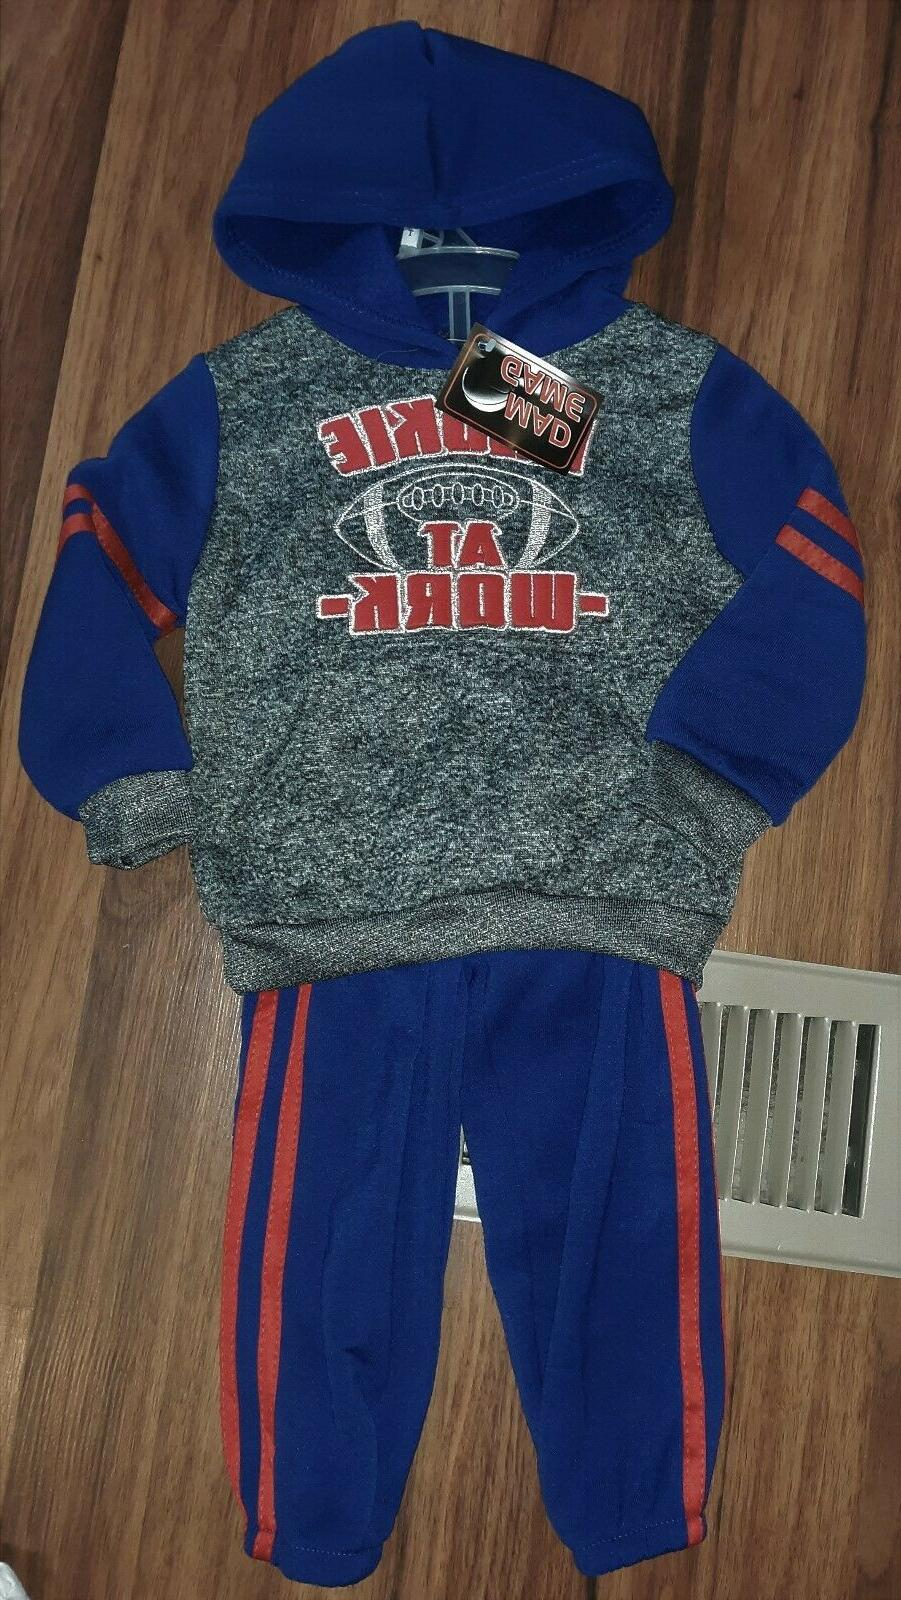 Lot Clothes size Nickelodeon Patrol Guys